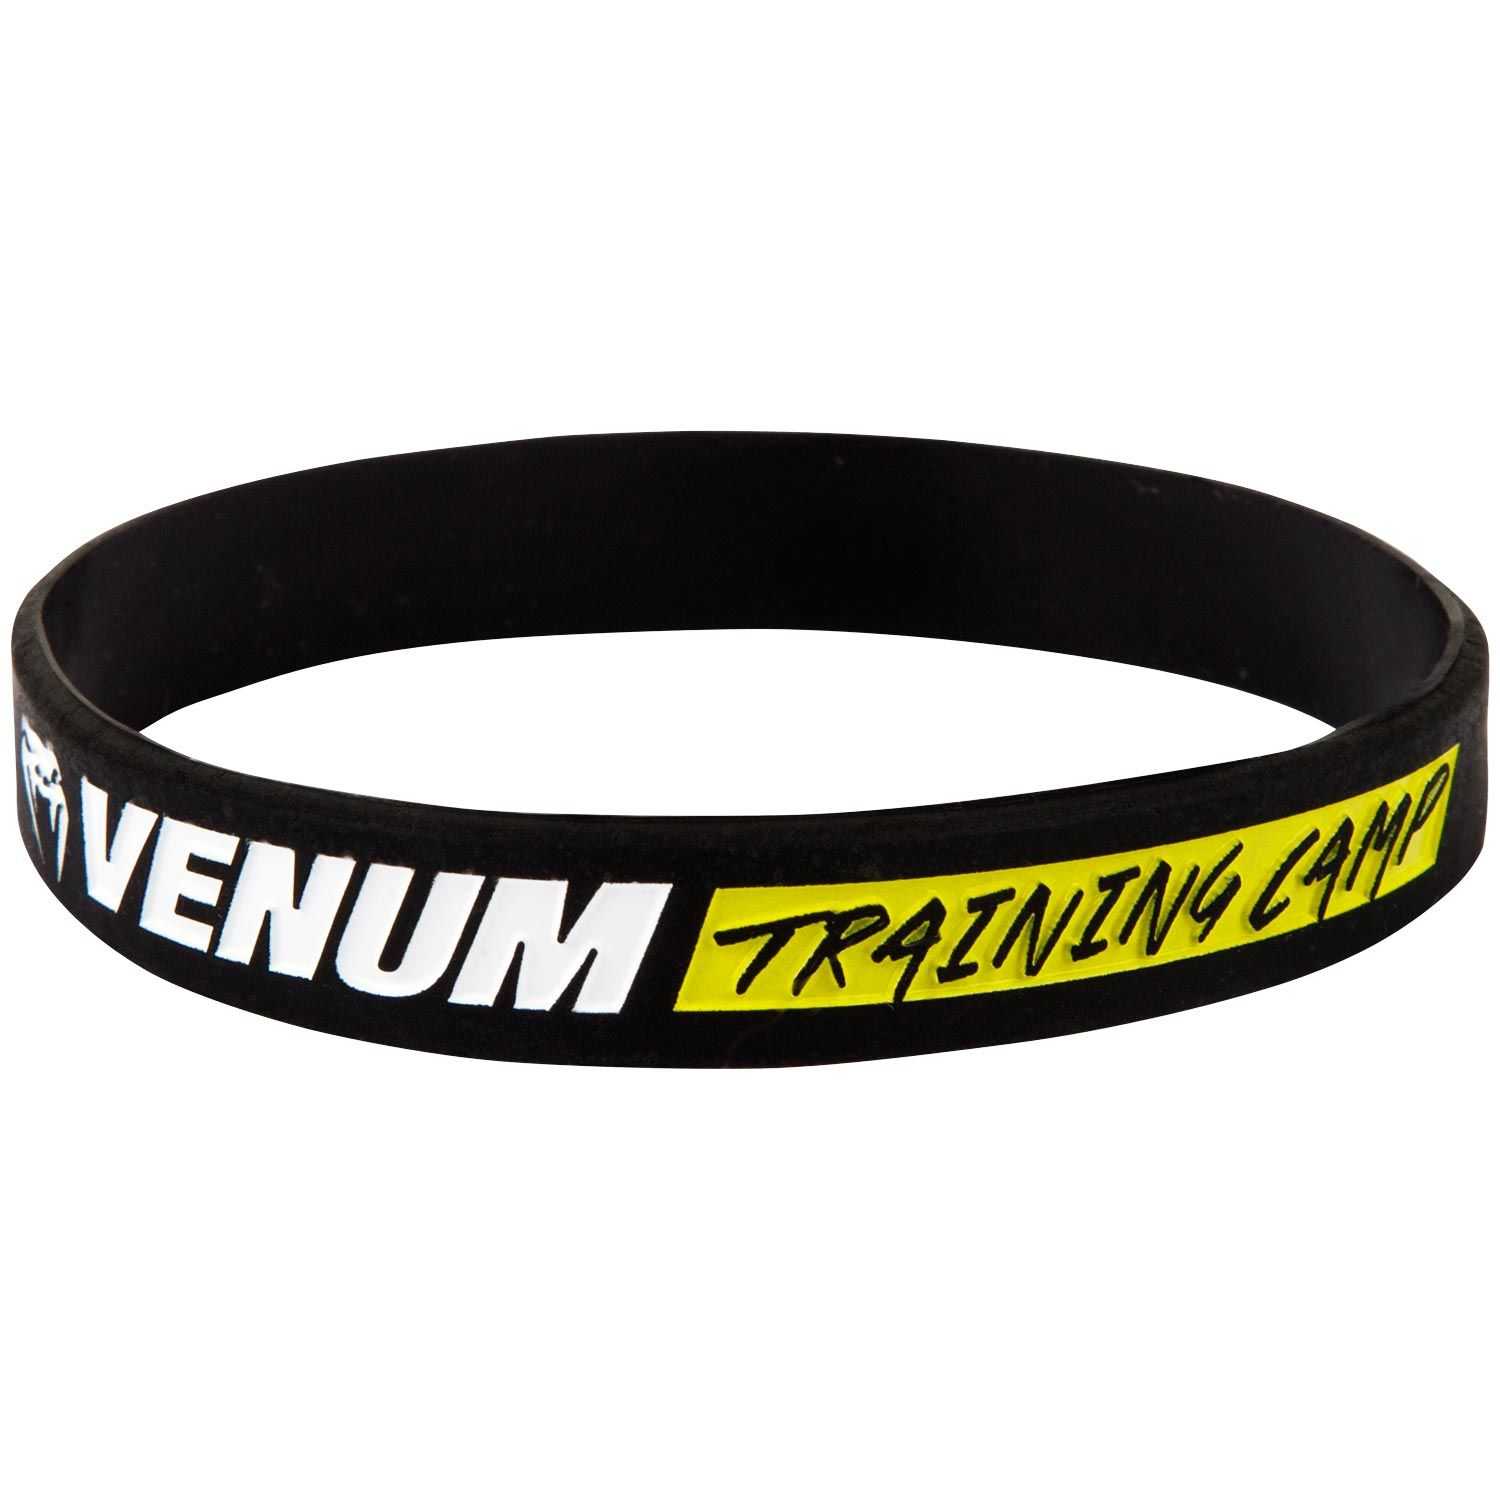 Venum Gummiband - Training Camp - Schwarz